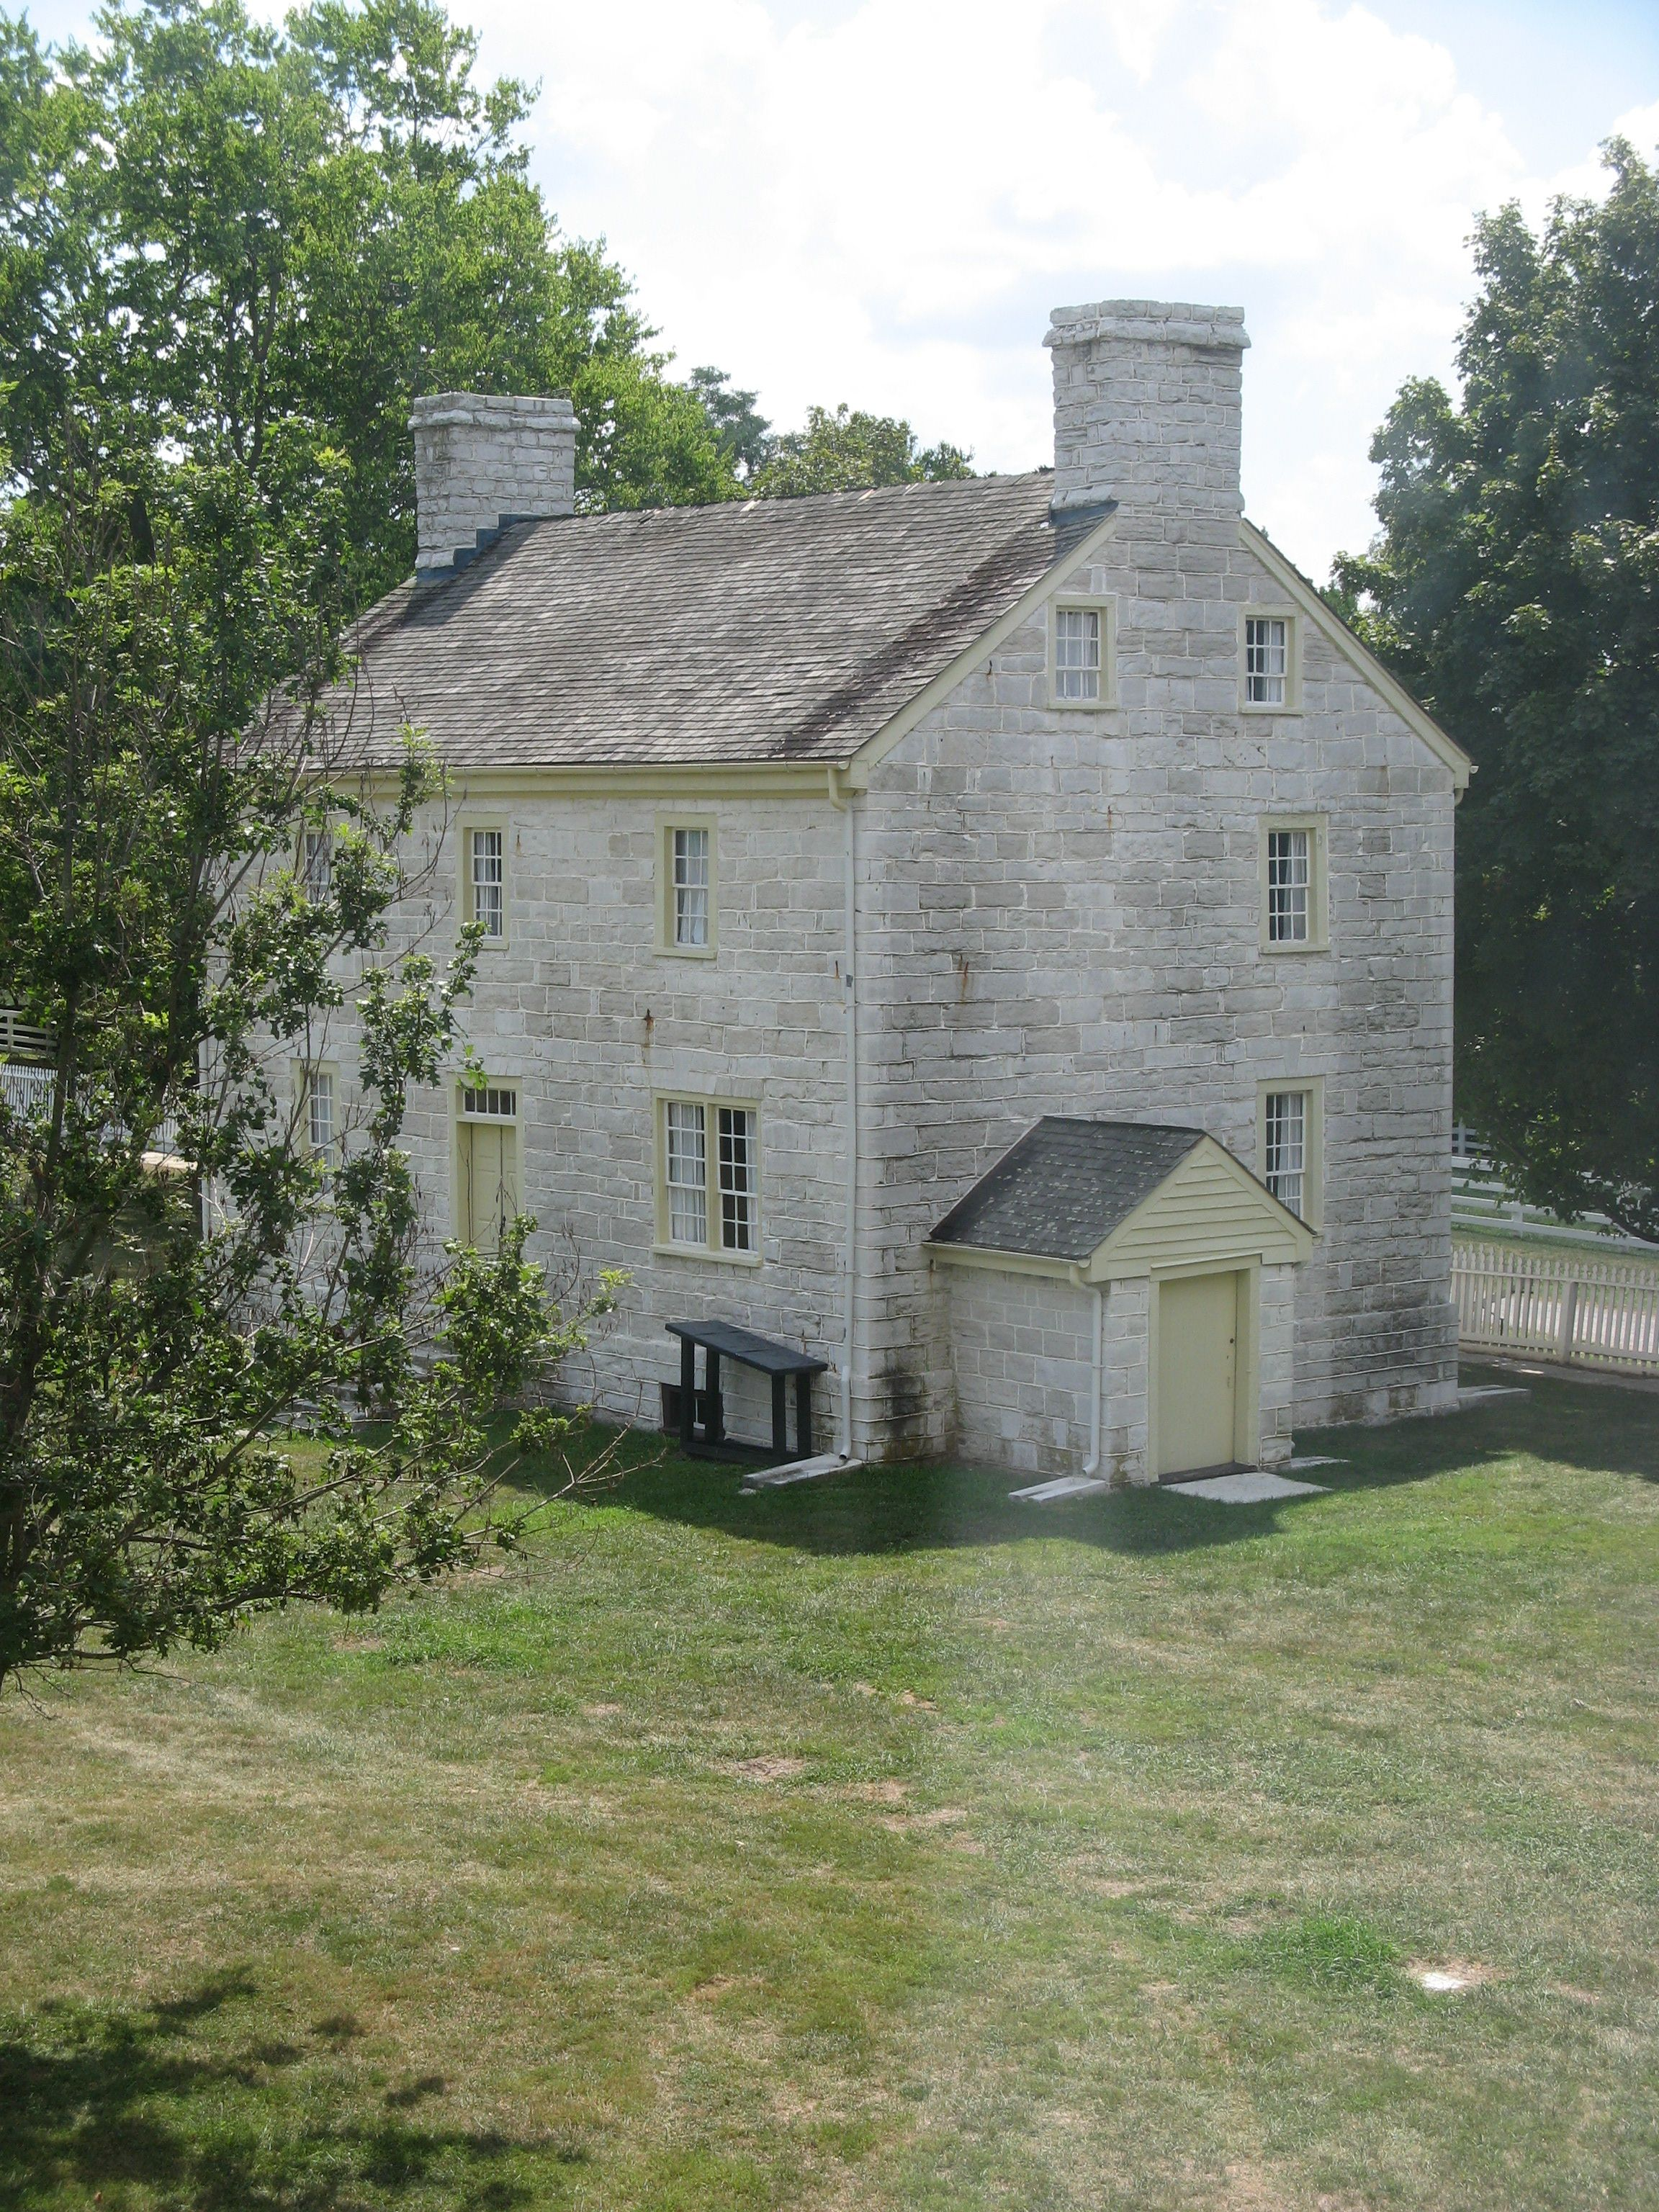 Pin By Kristy Hinshaw On Places I Ve Been Saltbox Houses Stone Houses Colonial House